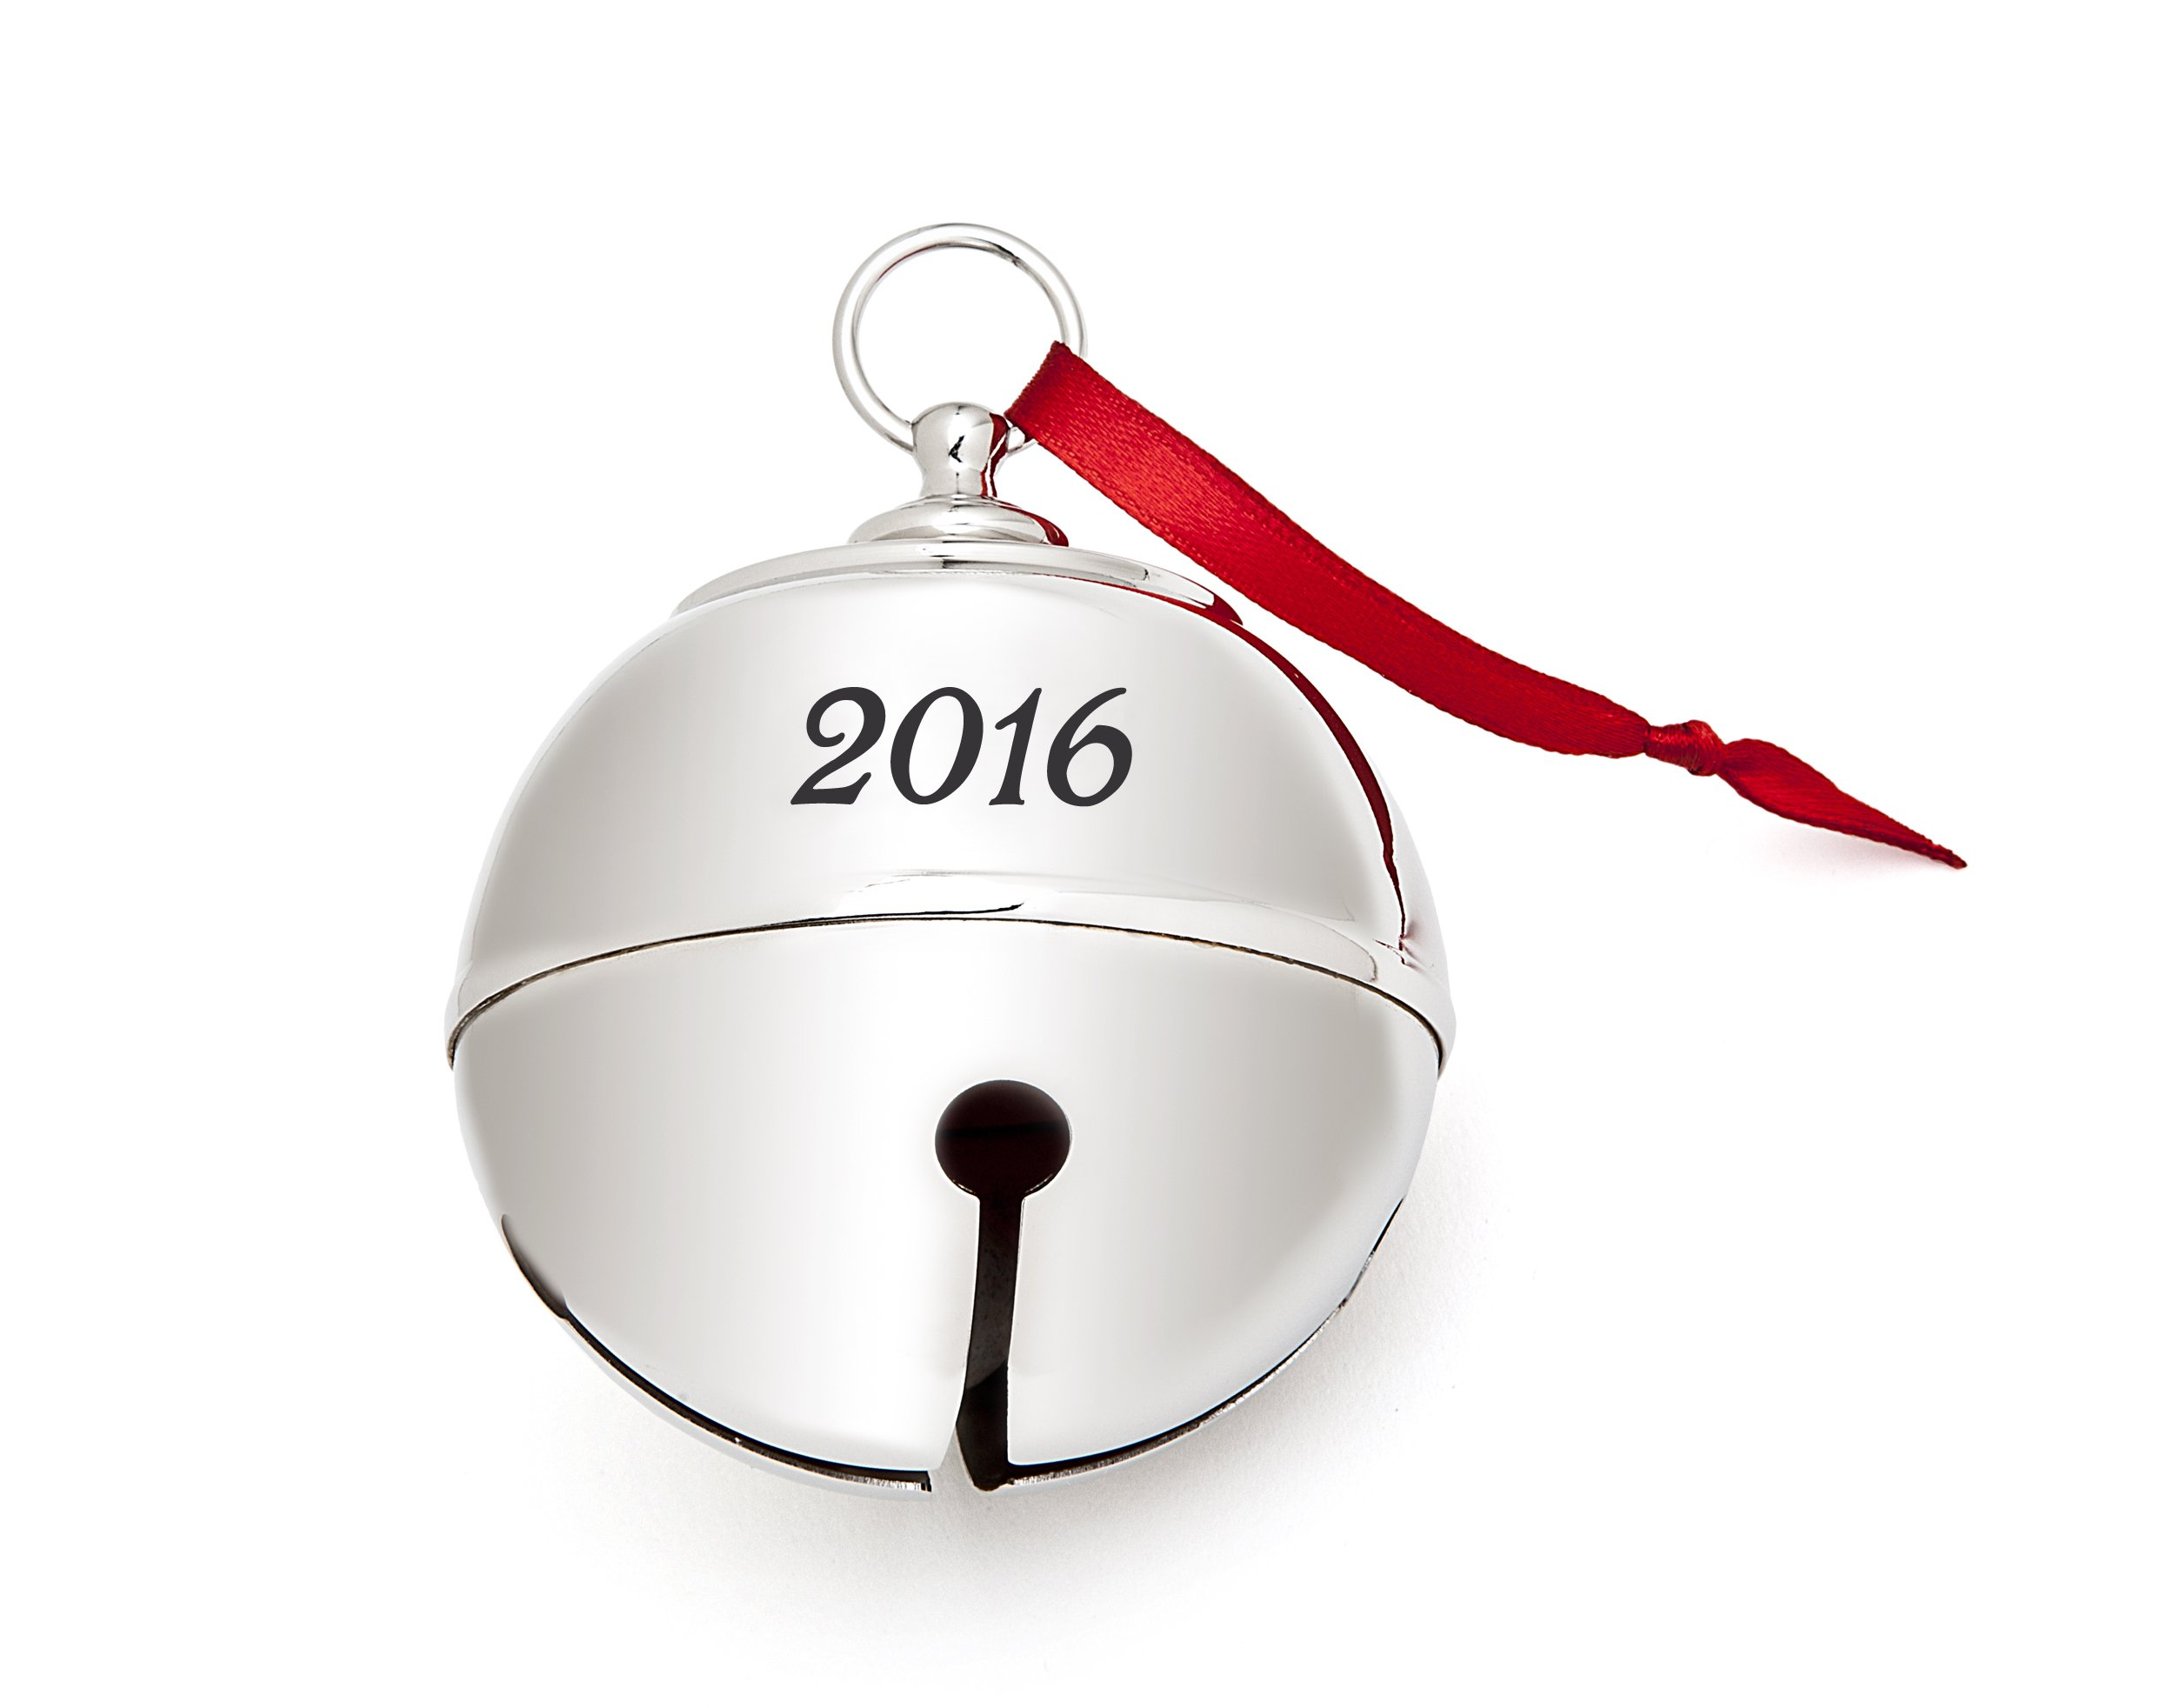 Klikel 2016 Christmas Tree Holiday Sleigh Holly Bell Ornament Decoration With Red Ribbon 3rd Annual 2016 Engraved